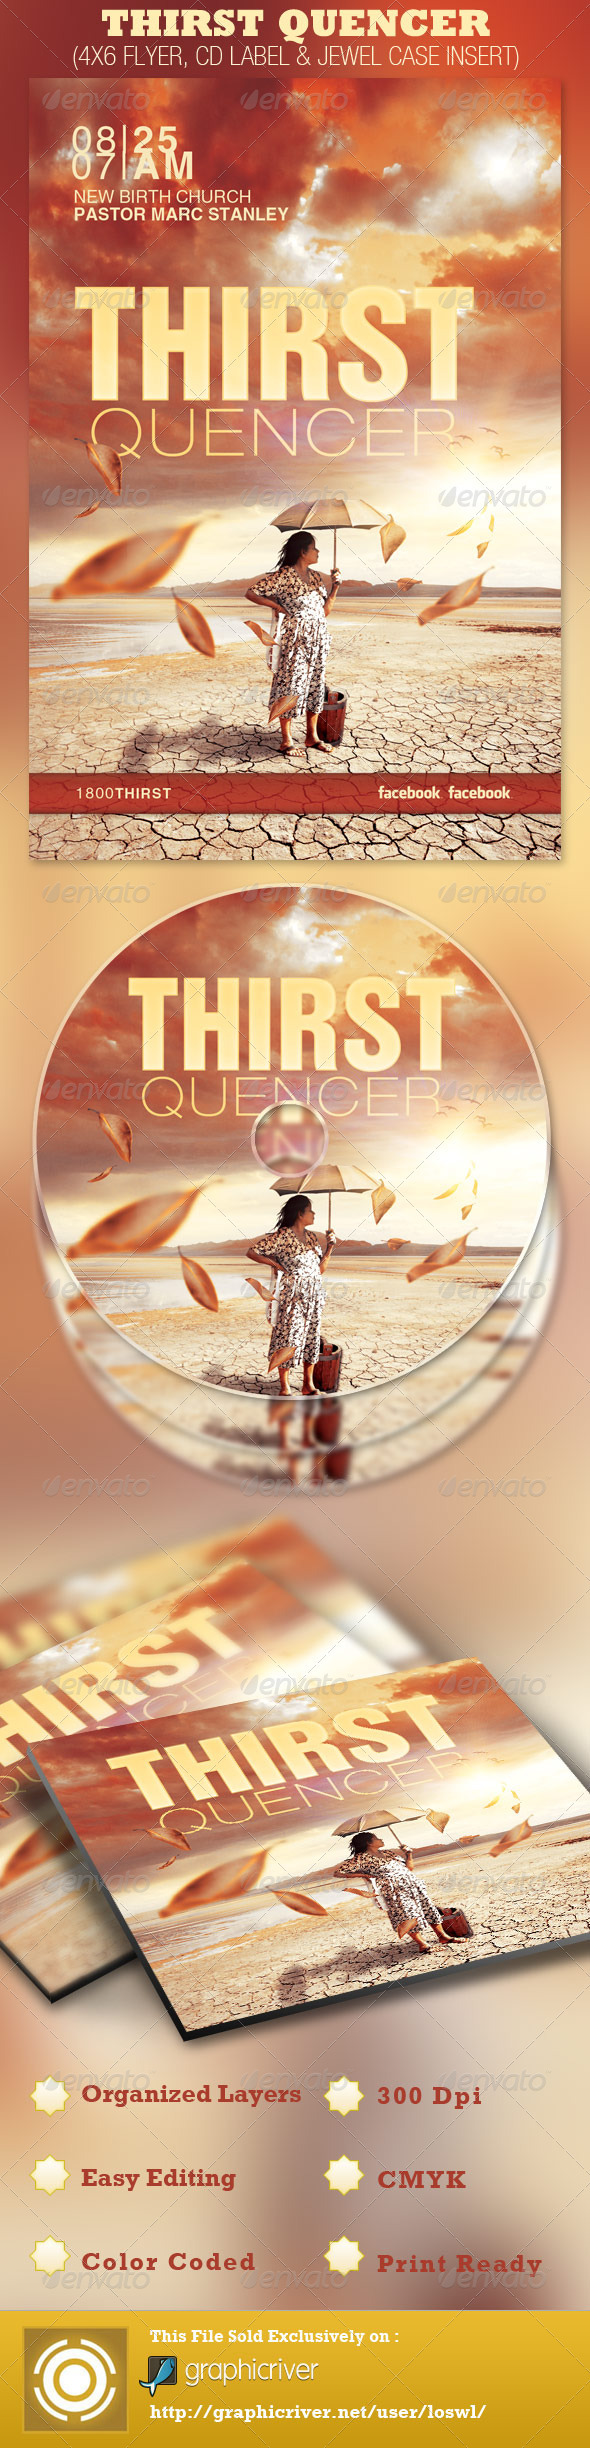 Thirst Quencher Church Flyer and CD Template - Church Flyers